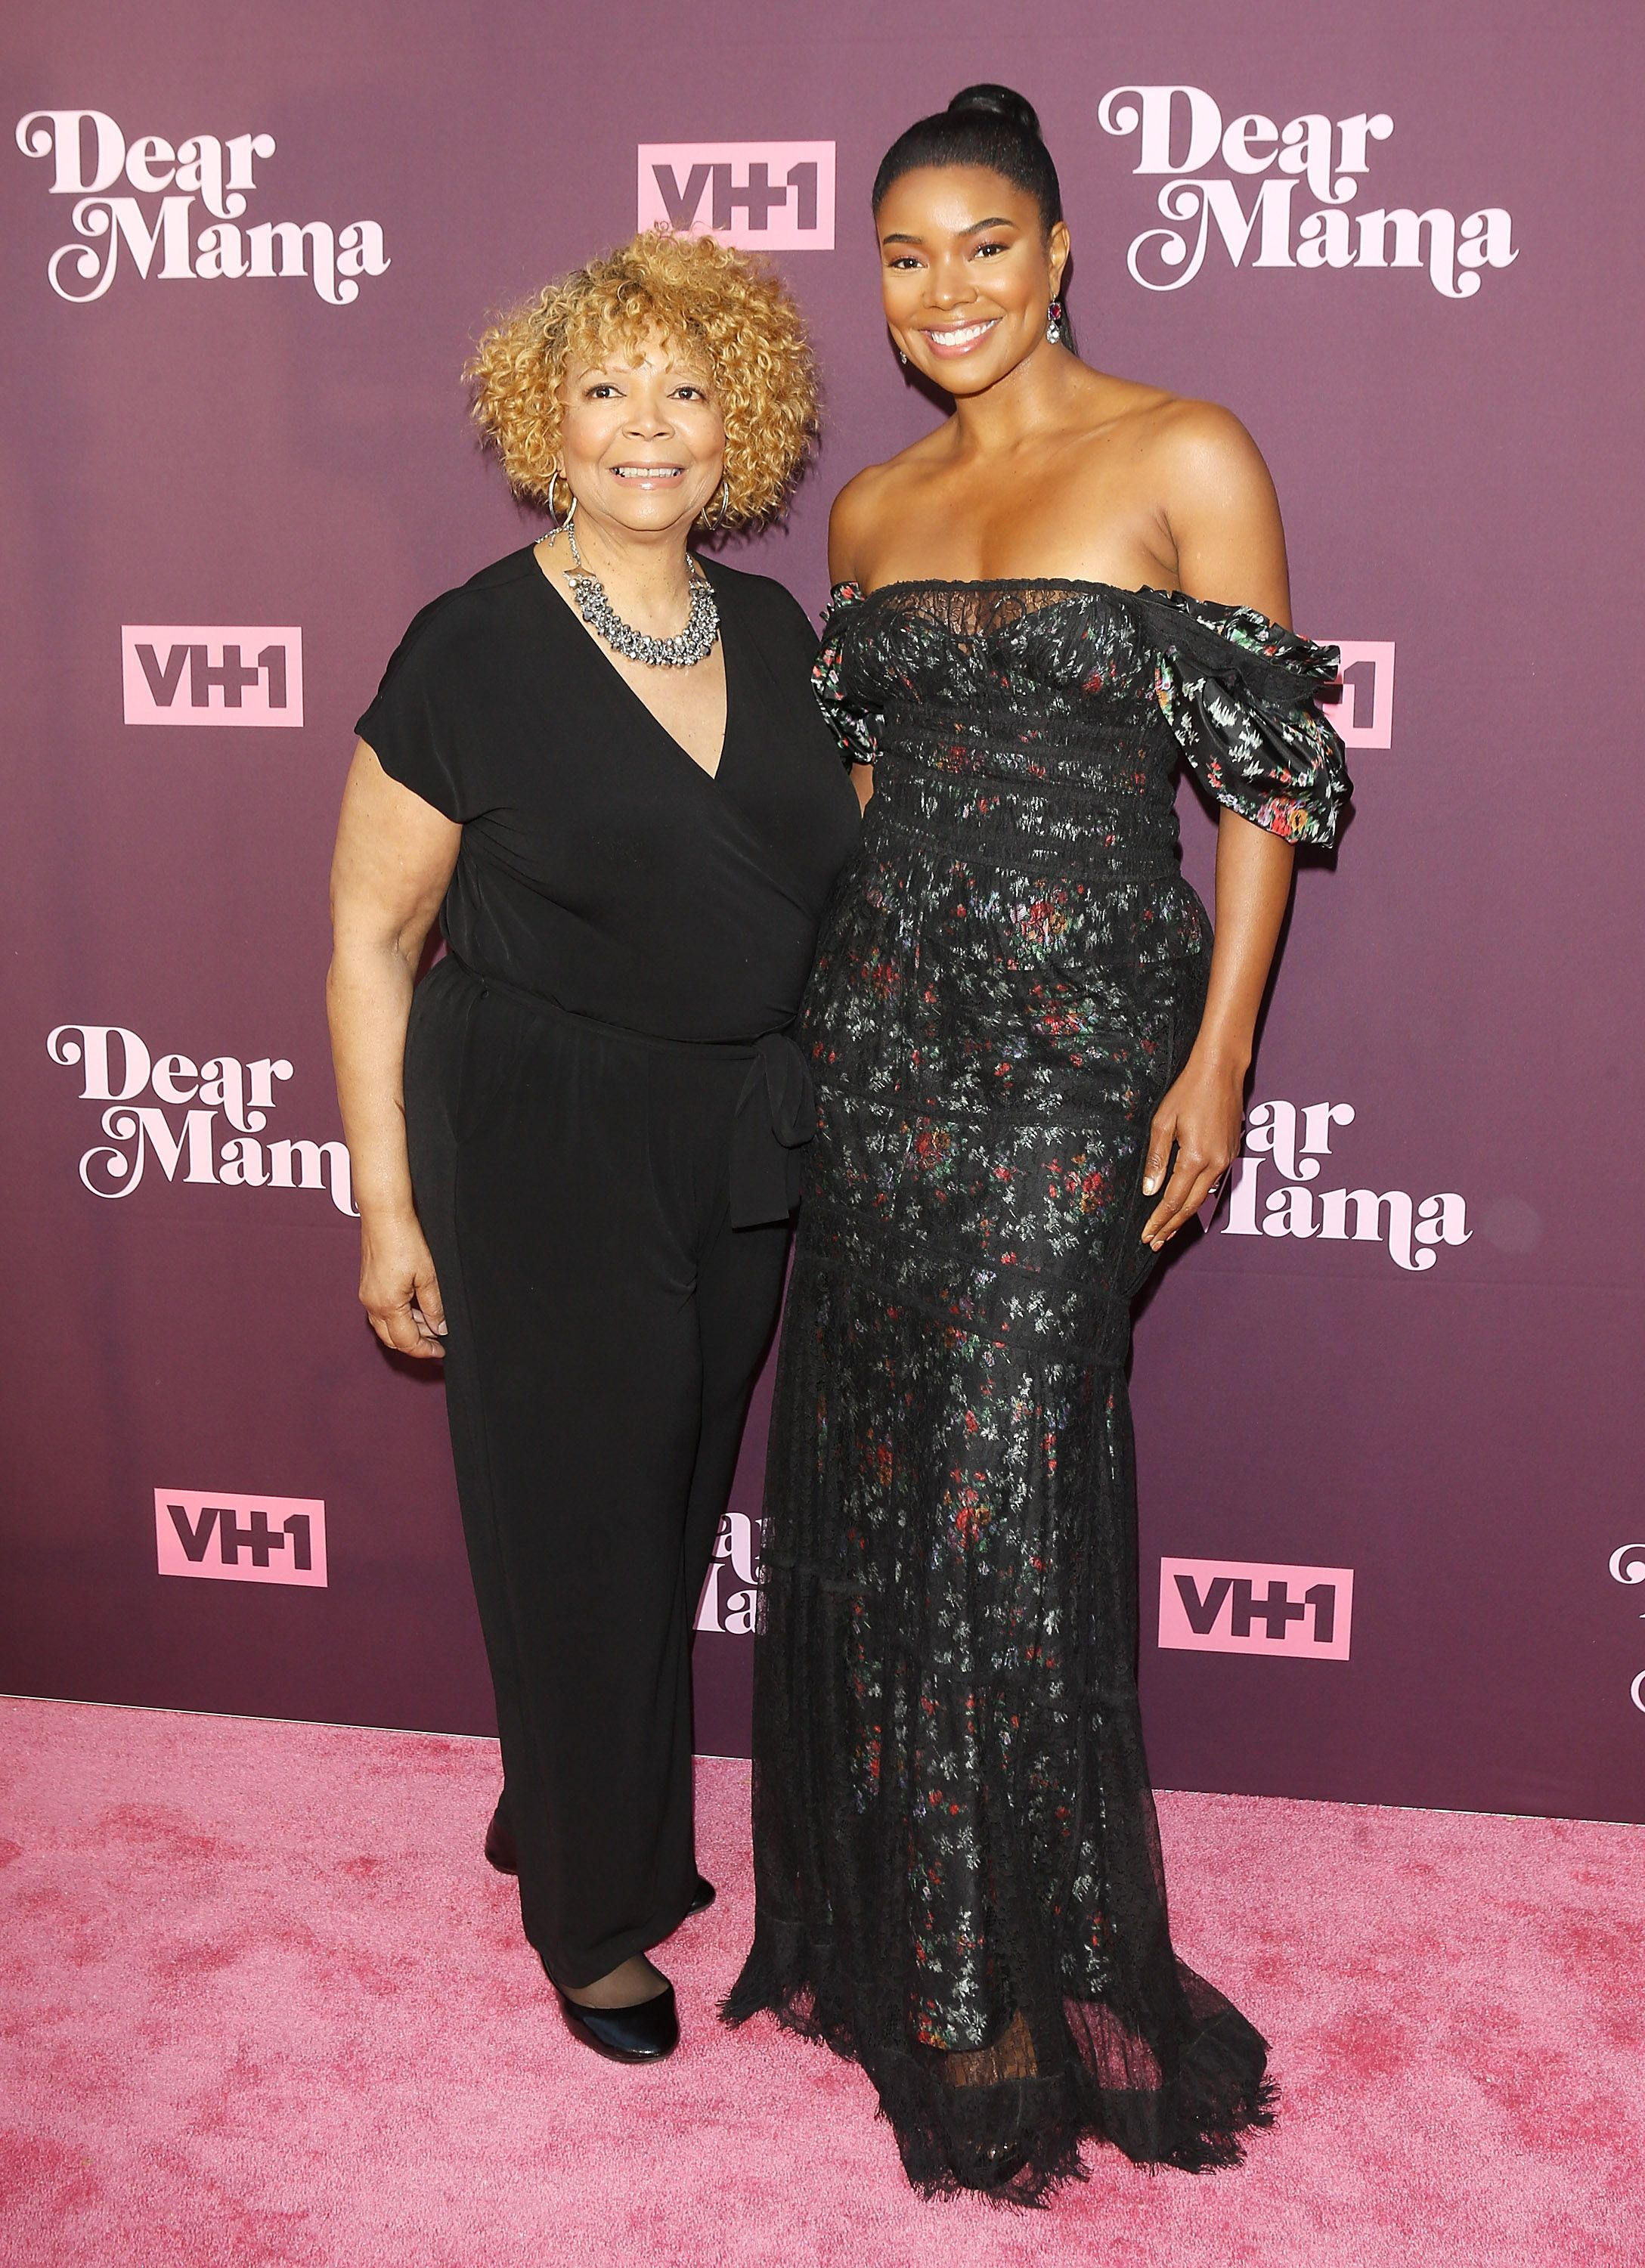 """Gabrielle Union and her mother Theresa Union at VH1's 3rd Annual """"Dear Mama: A Love Letter To Moms"""" in 2018 